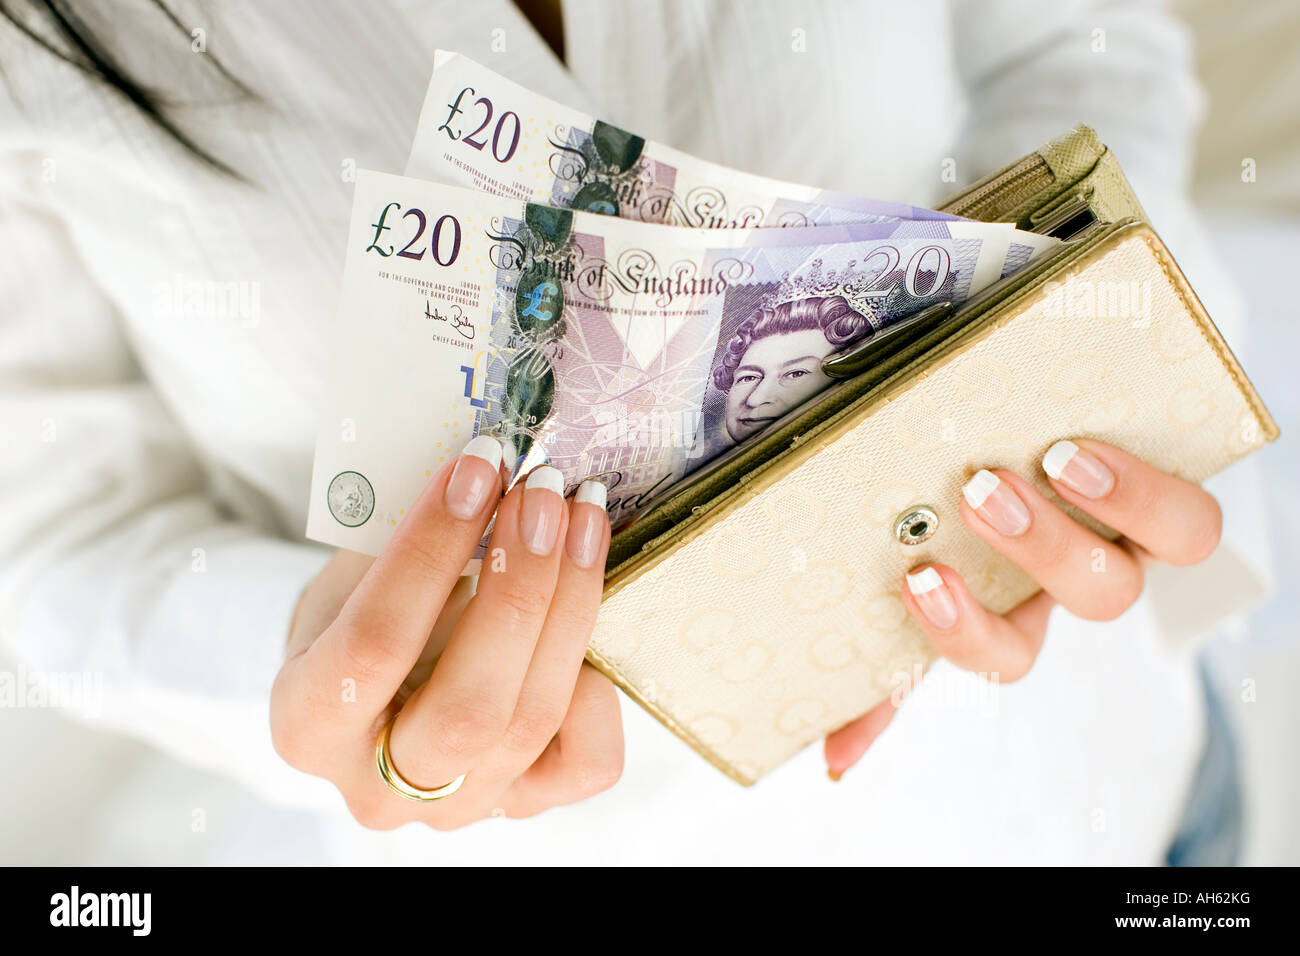 Woman with 20 pound notes in purse - Stock Image